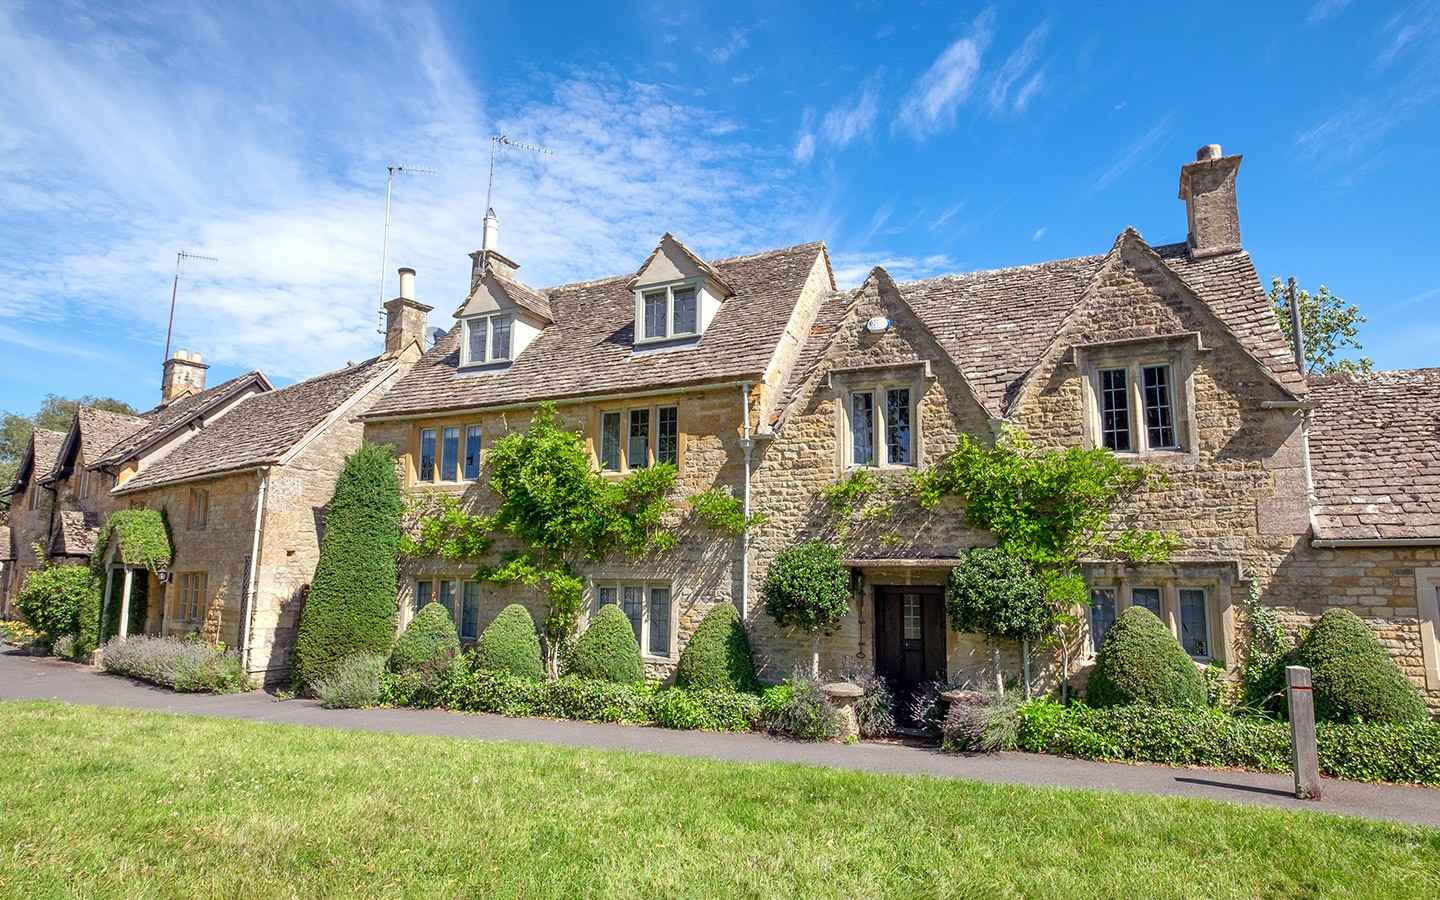 A weekend in The Cotswolds: A 48-hour itinerary